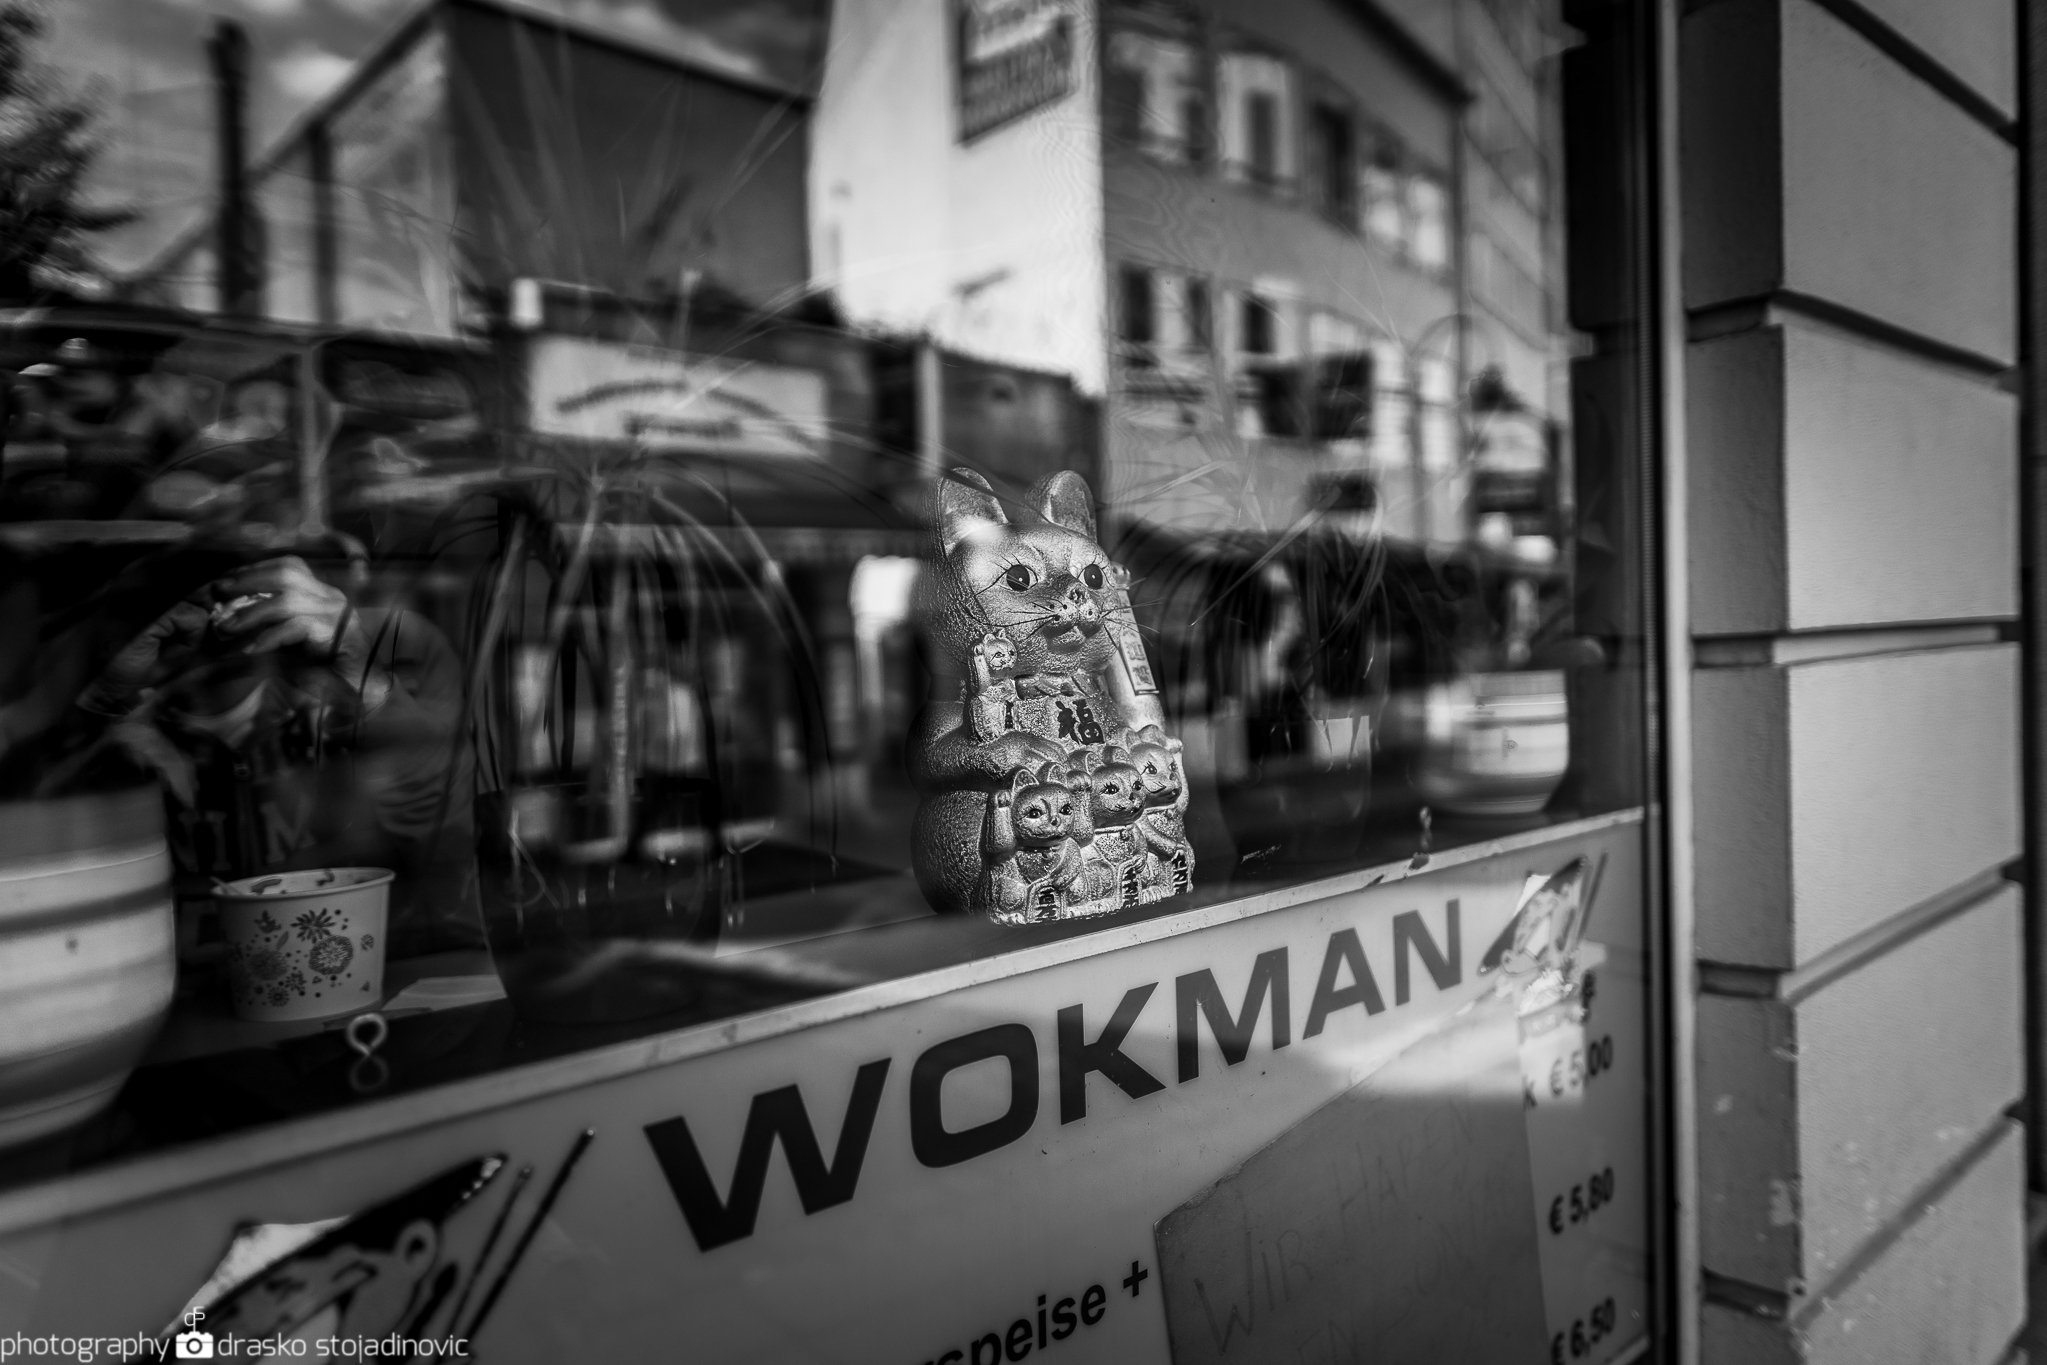 Streetphotography with the A7II and manual lenses – dsphotoblog com